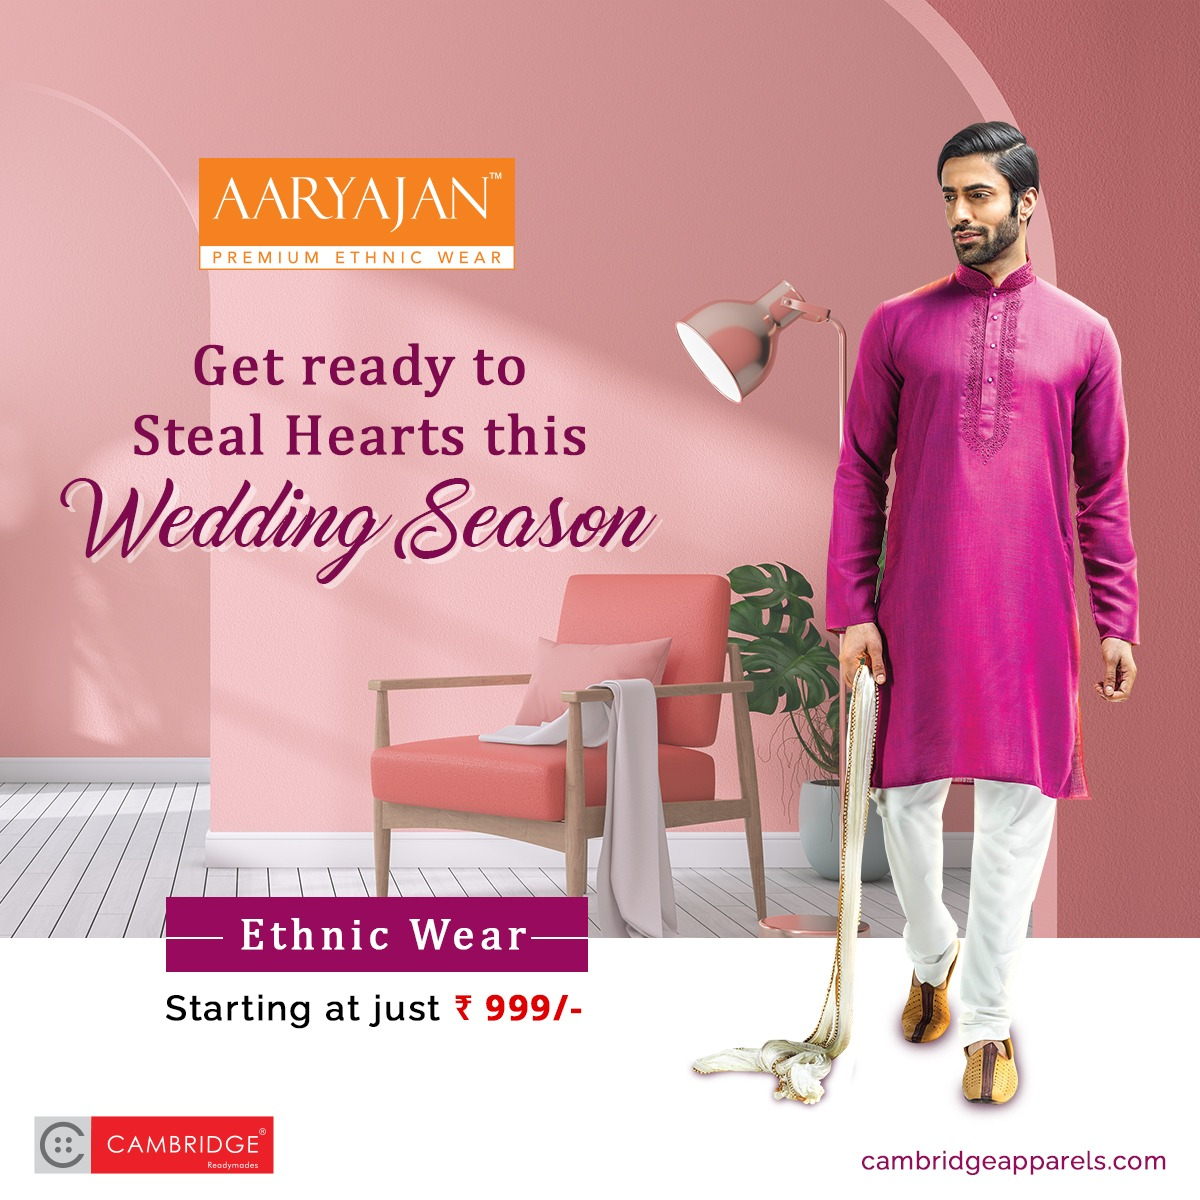 With uniquely designed kurta suits and trendy jackets starting at just Rs. 999, you'll be all set to steal hearts this festive and #WeddingSeason.   Shop from our ethnic collection today by visiting your nearest Cambridge Apparels store or through our website.